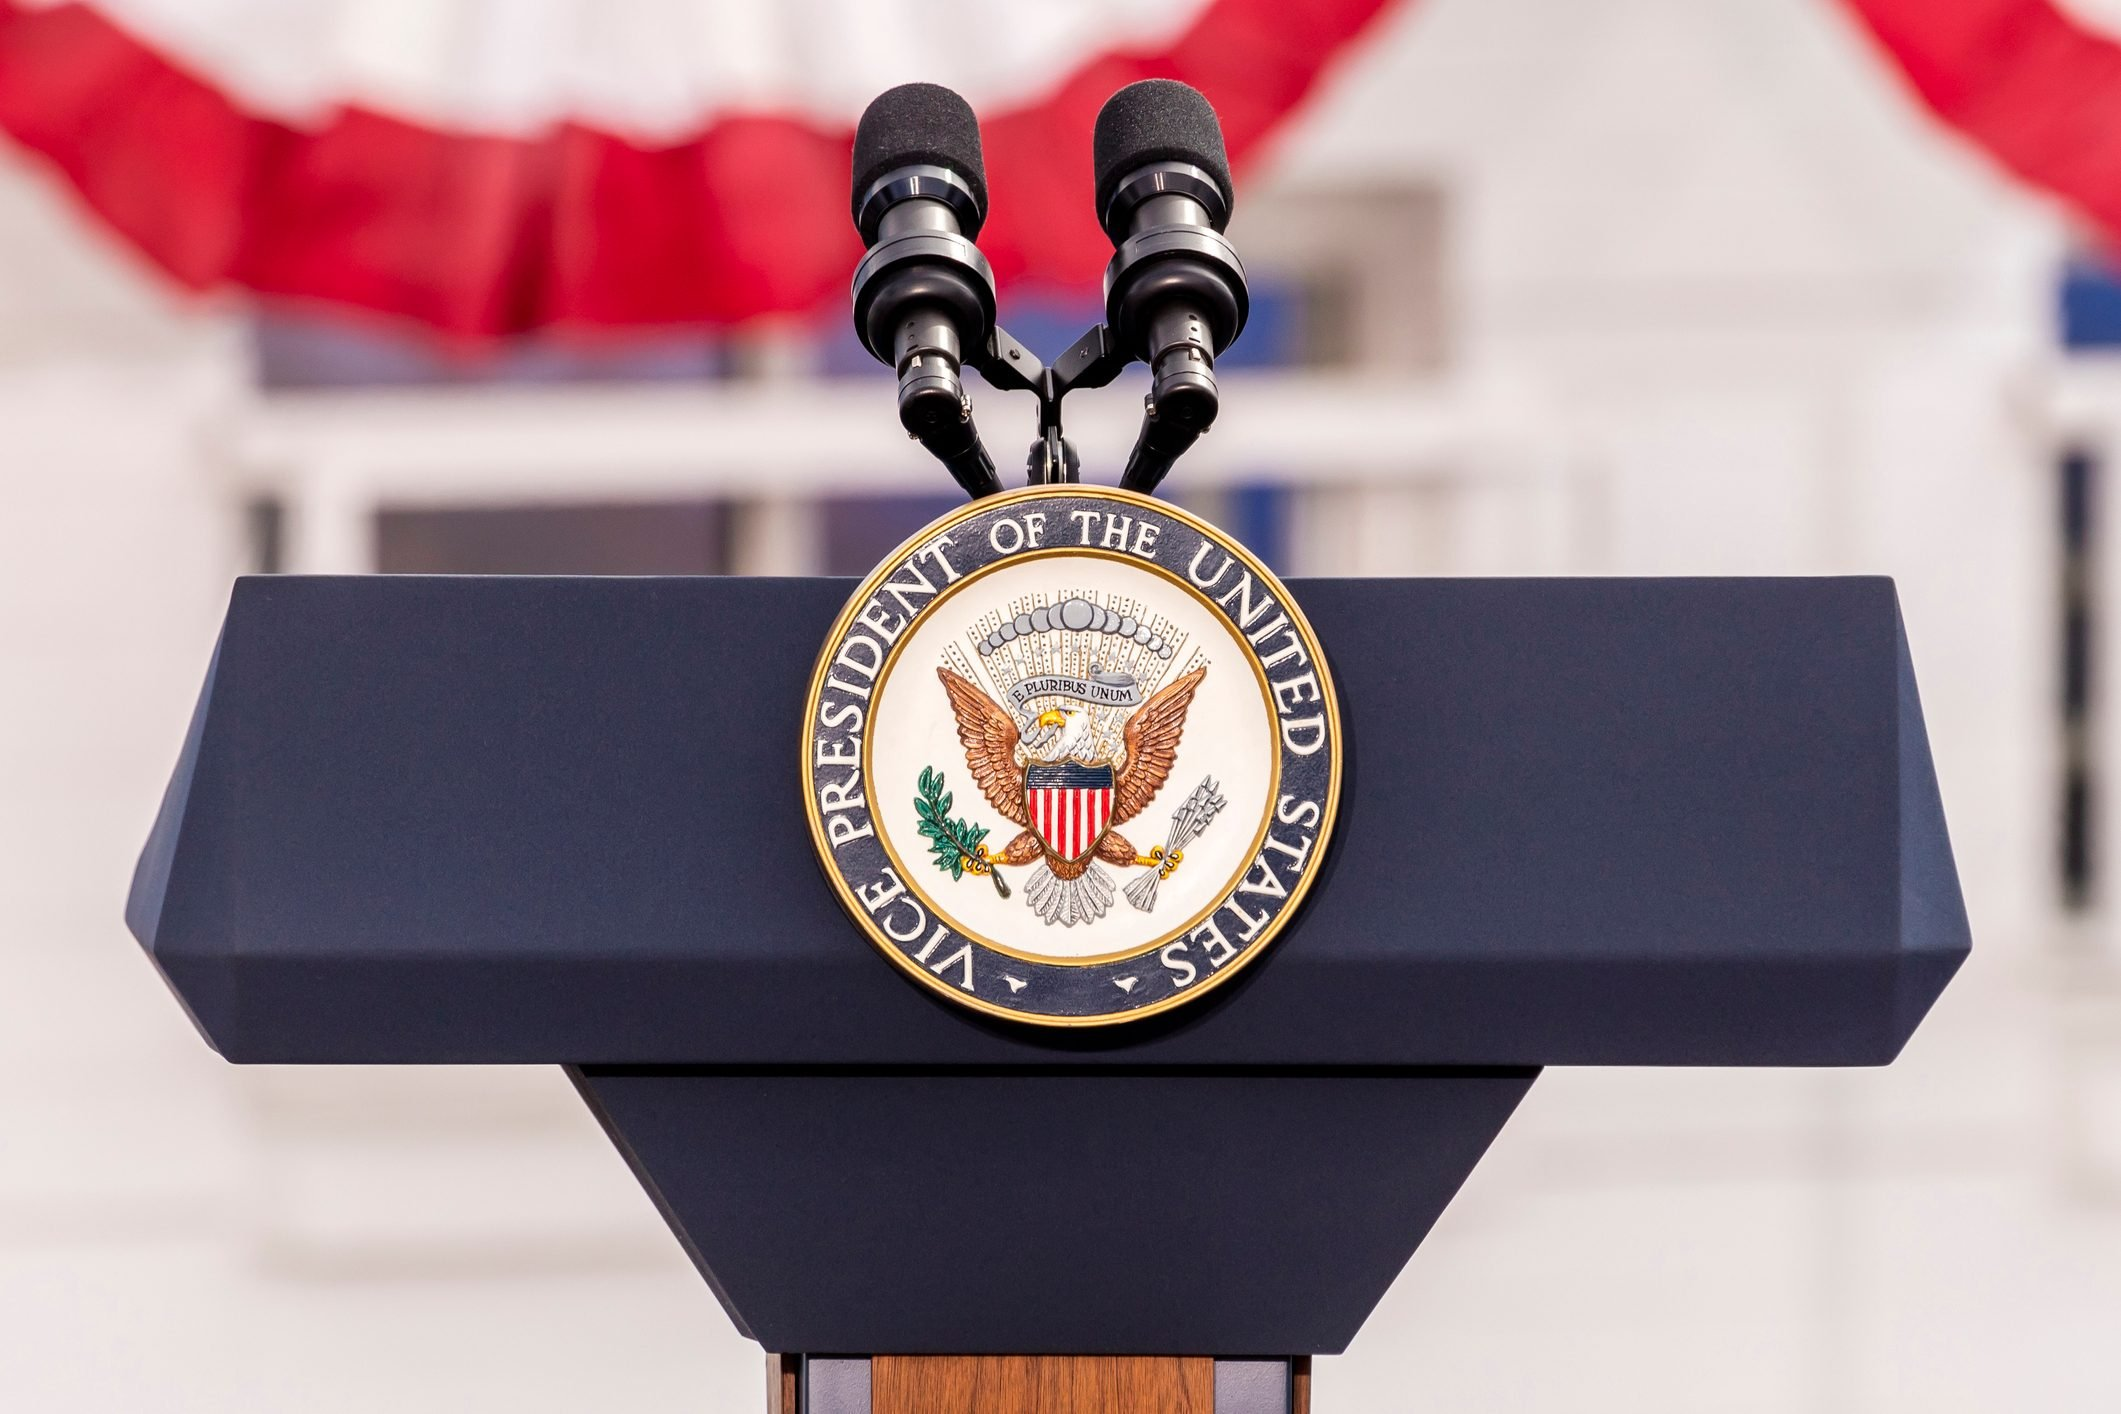 Vice Presidential Seal and Empty Podium